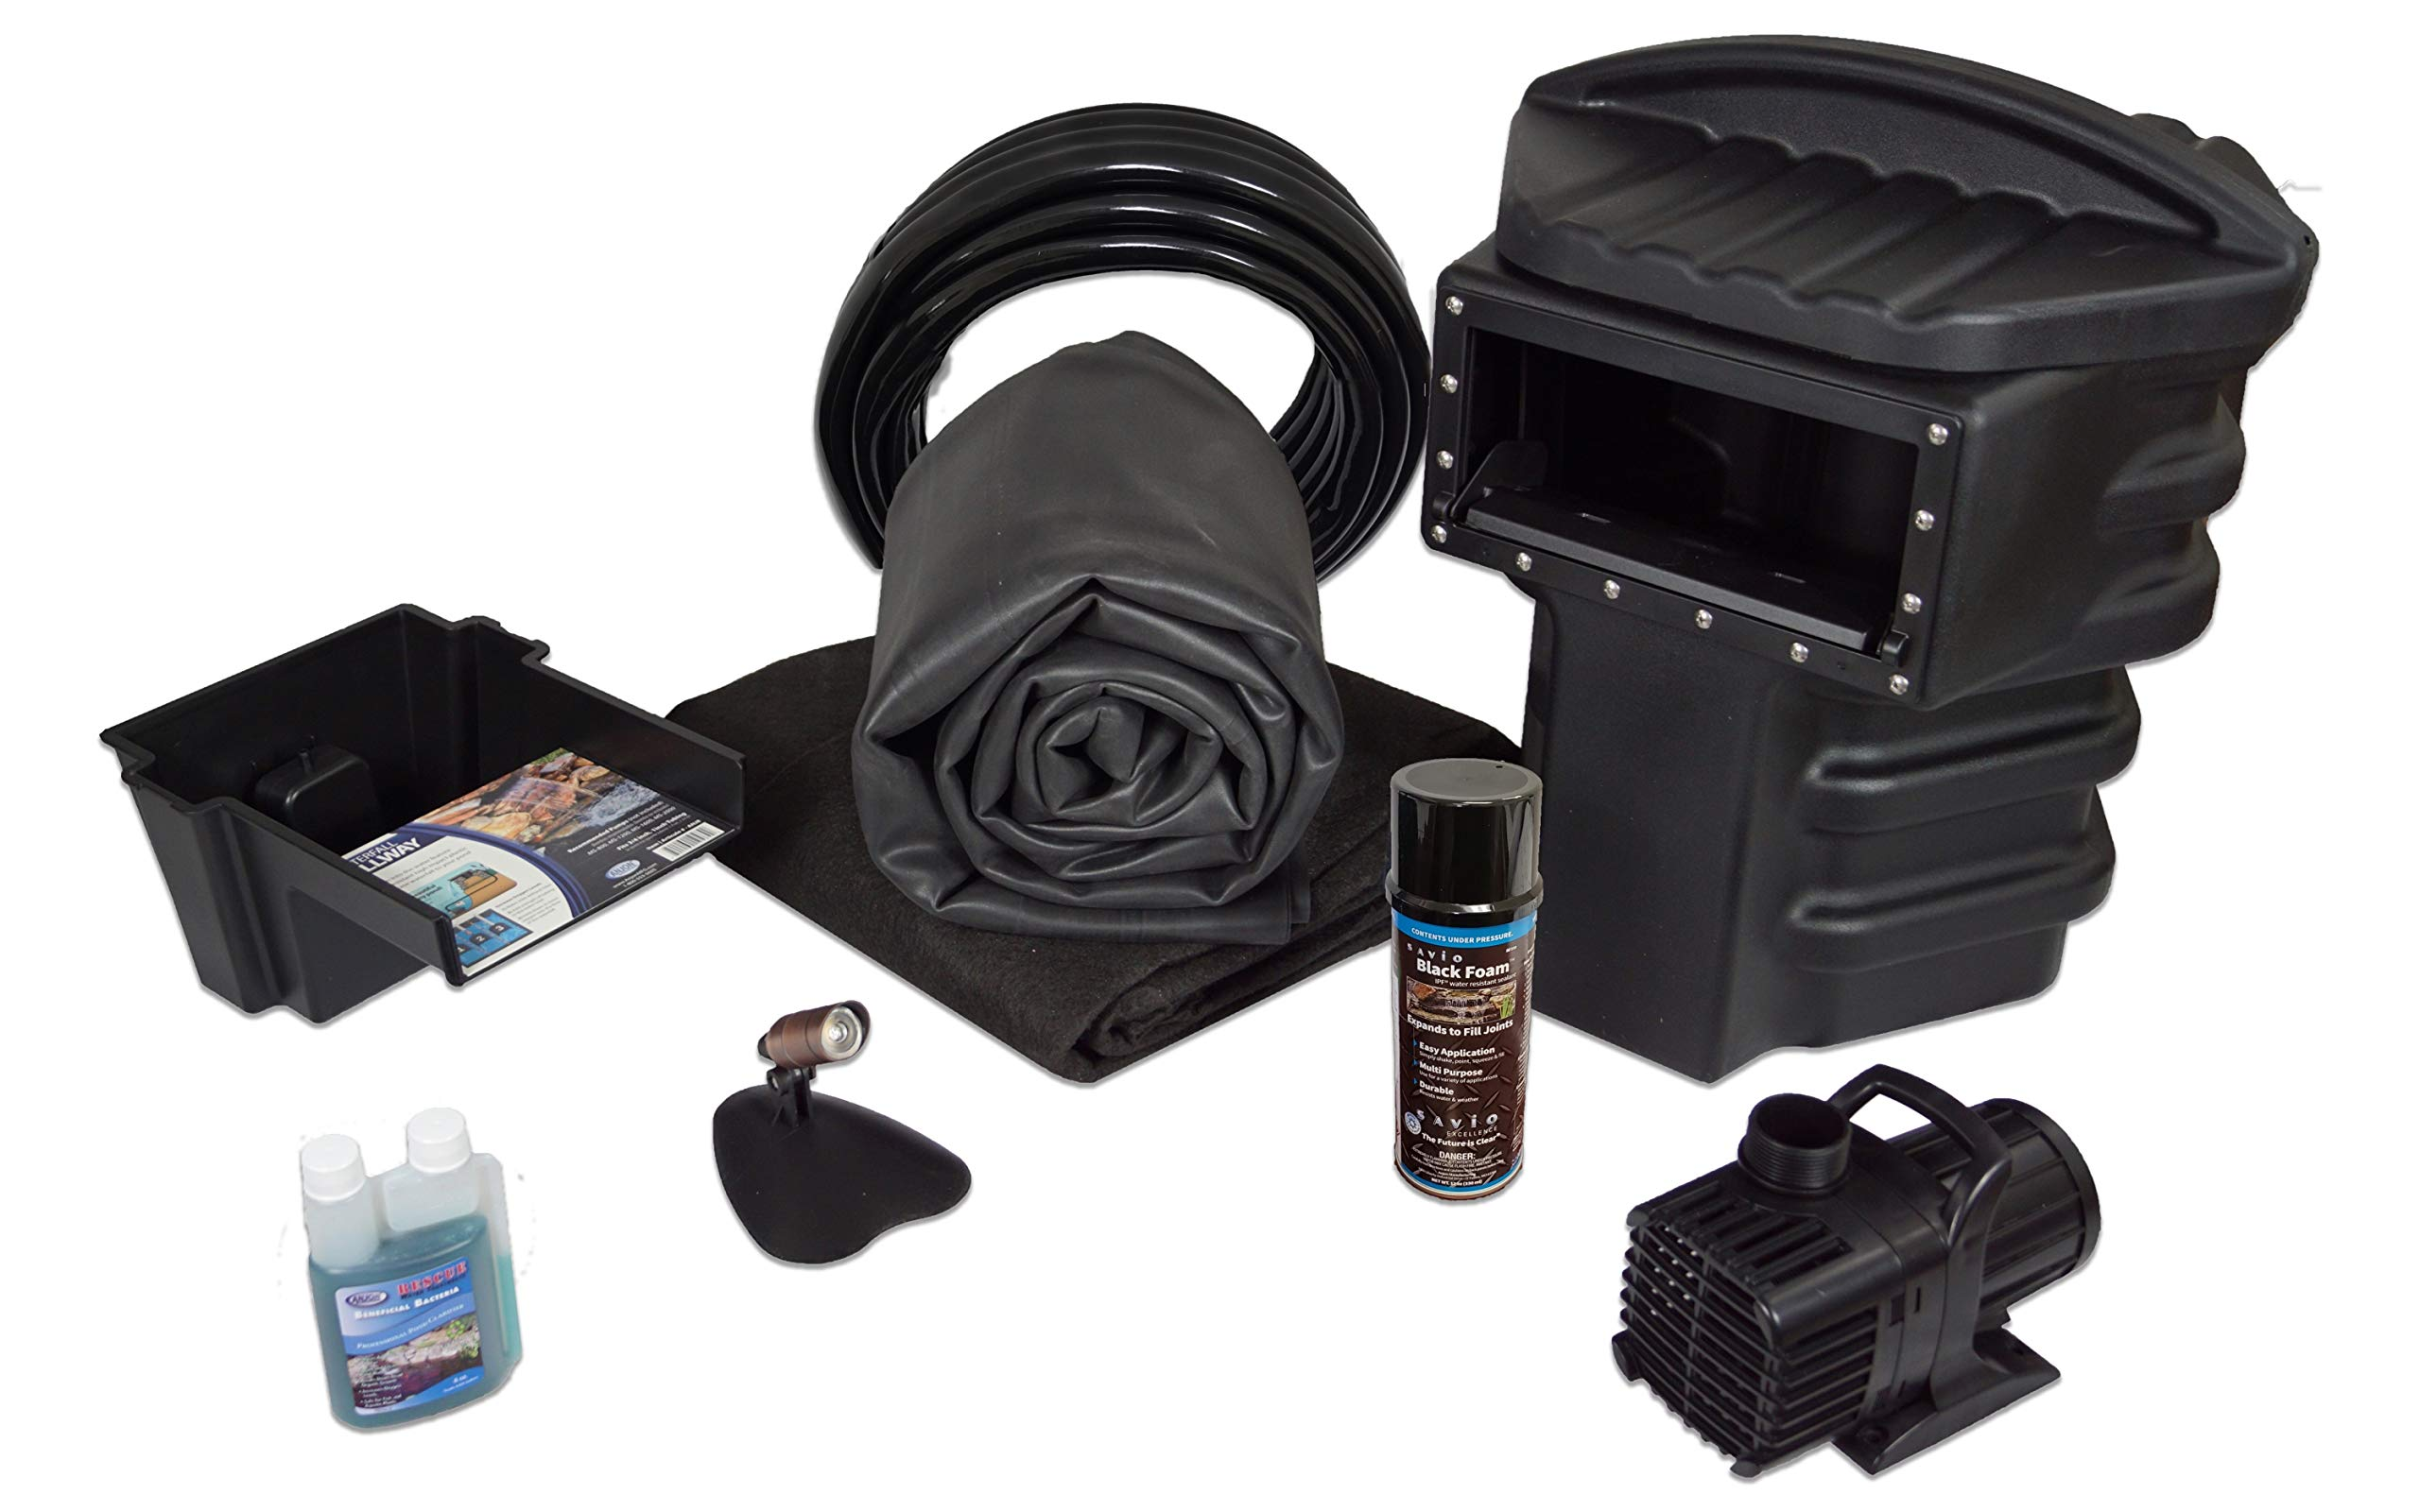 Simply Ponds 1200 Water Garden and Pond Kit with 10 Foot x 15 Foot EPDM Liner